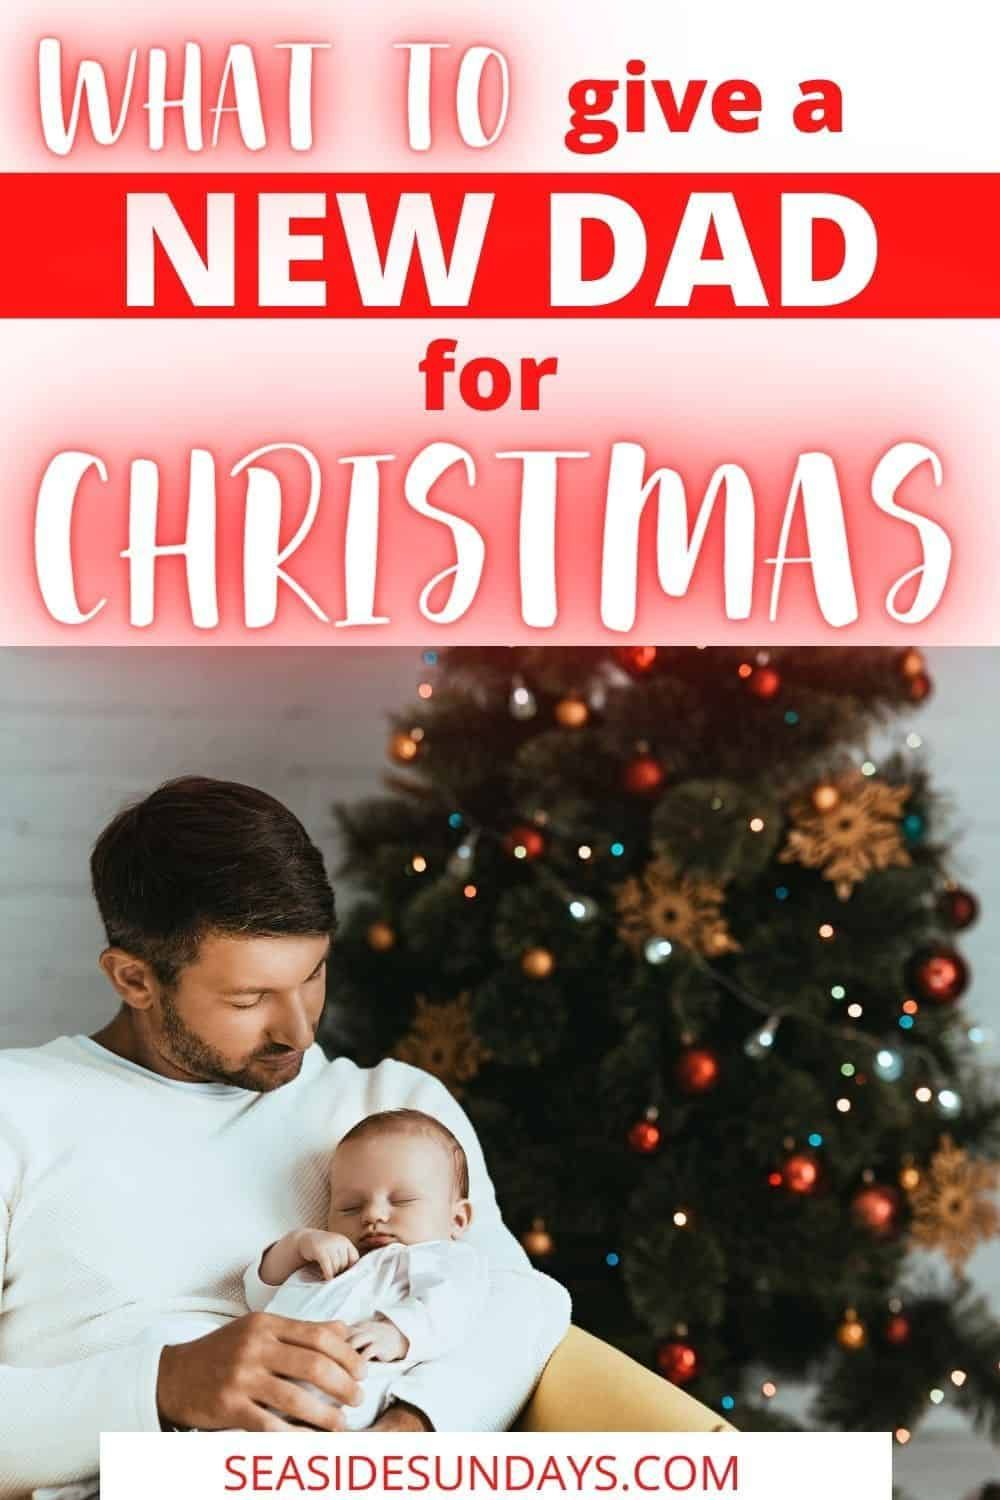 Christmas Gifts 2020 For New Dad 10 Unique Gifts For New Dads Christmas 2020 in 2020 | Gifts for